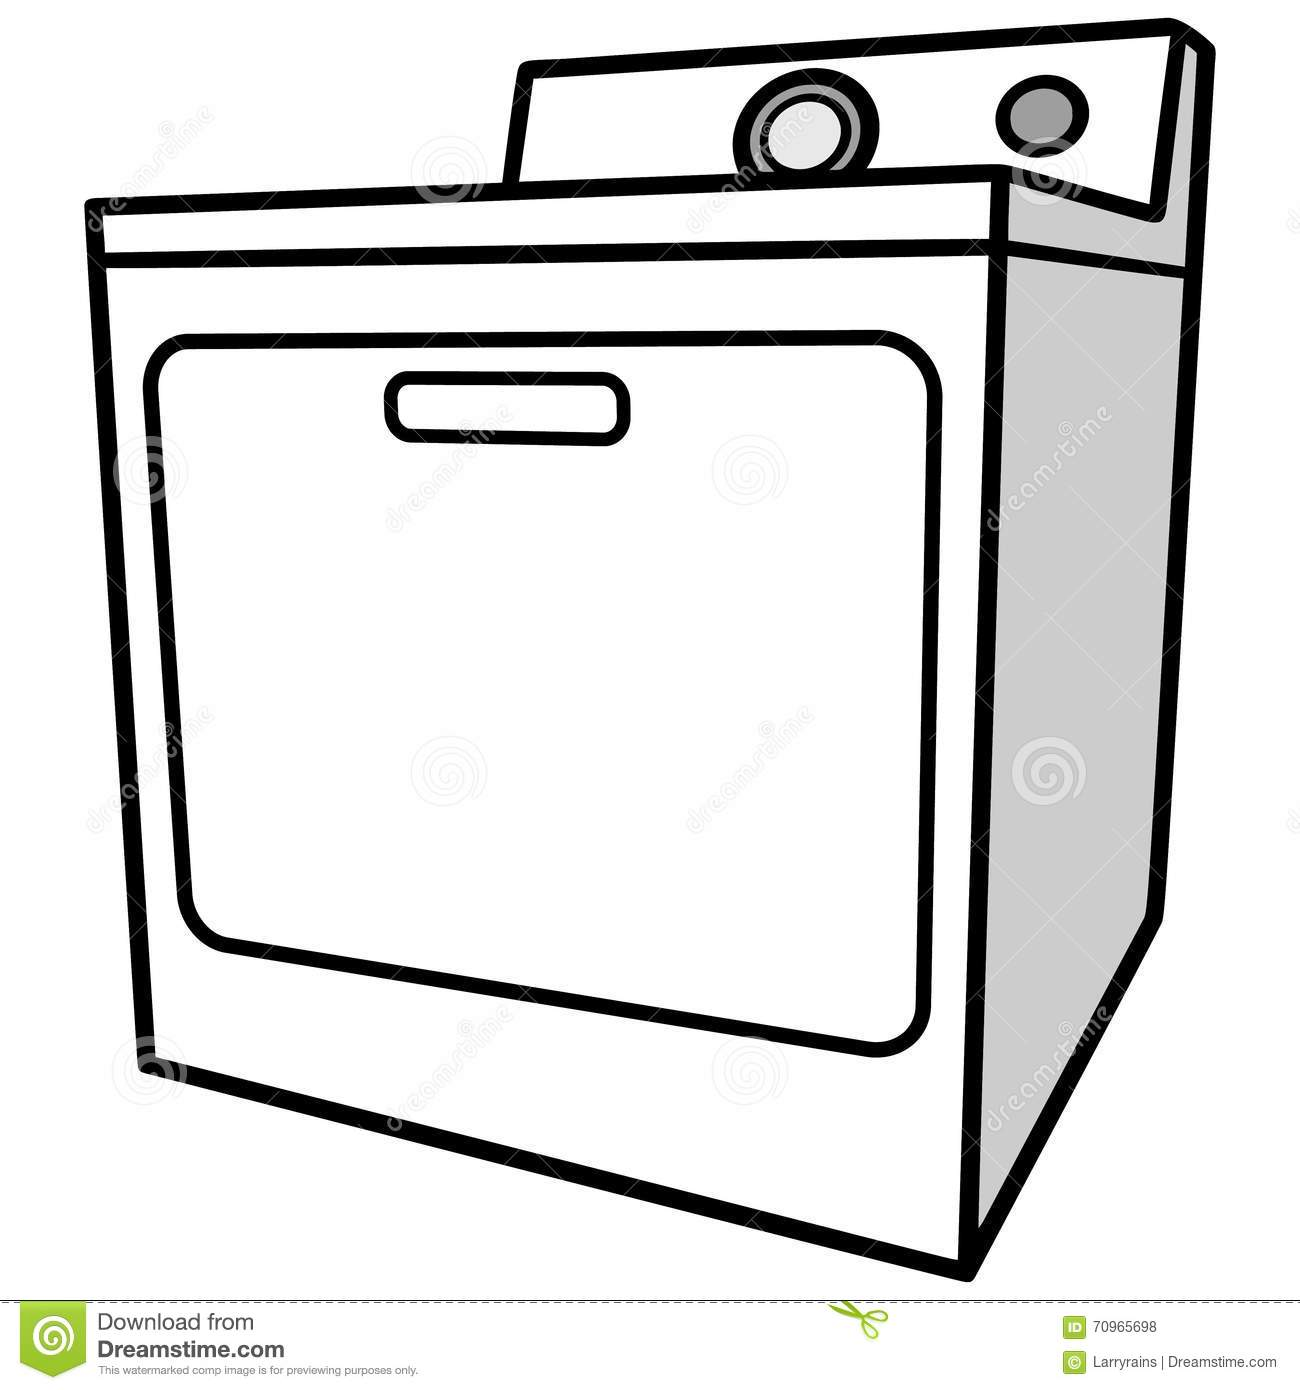 Dryer Clip Art ~ Clipart clothes dryer clipground